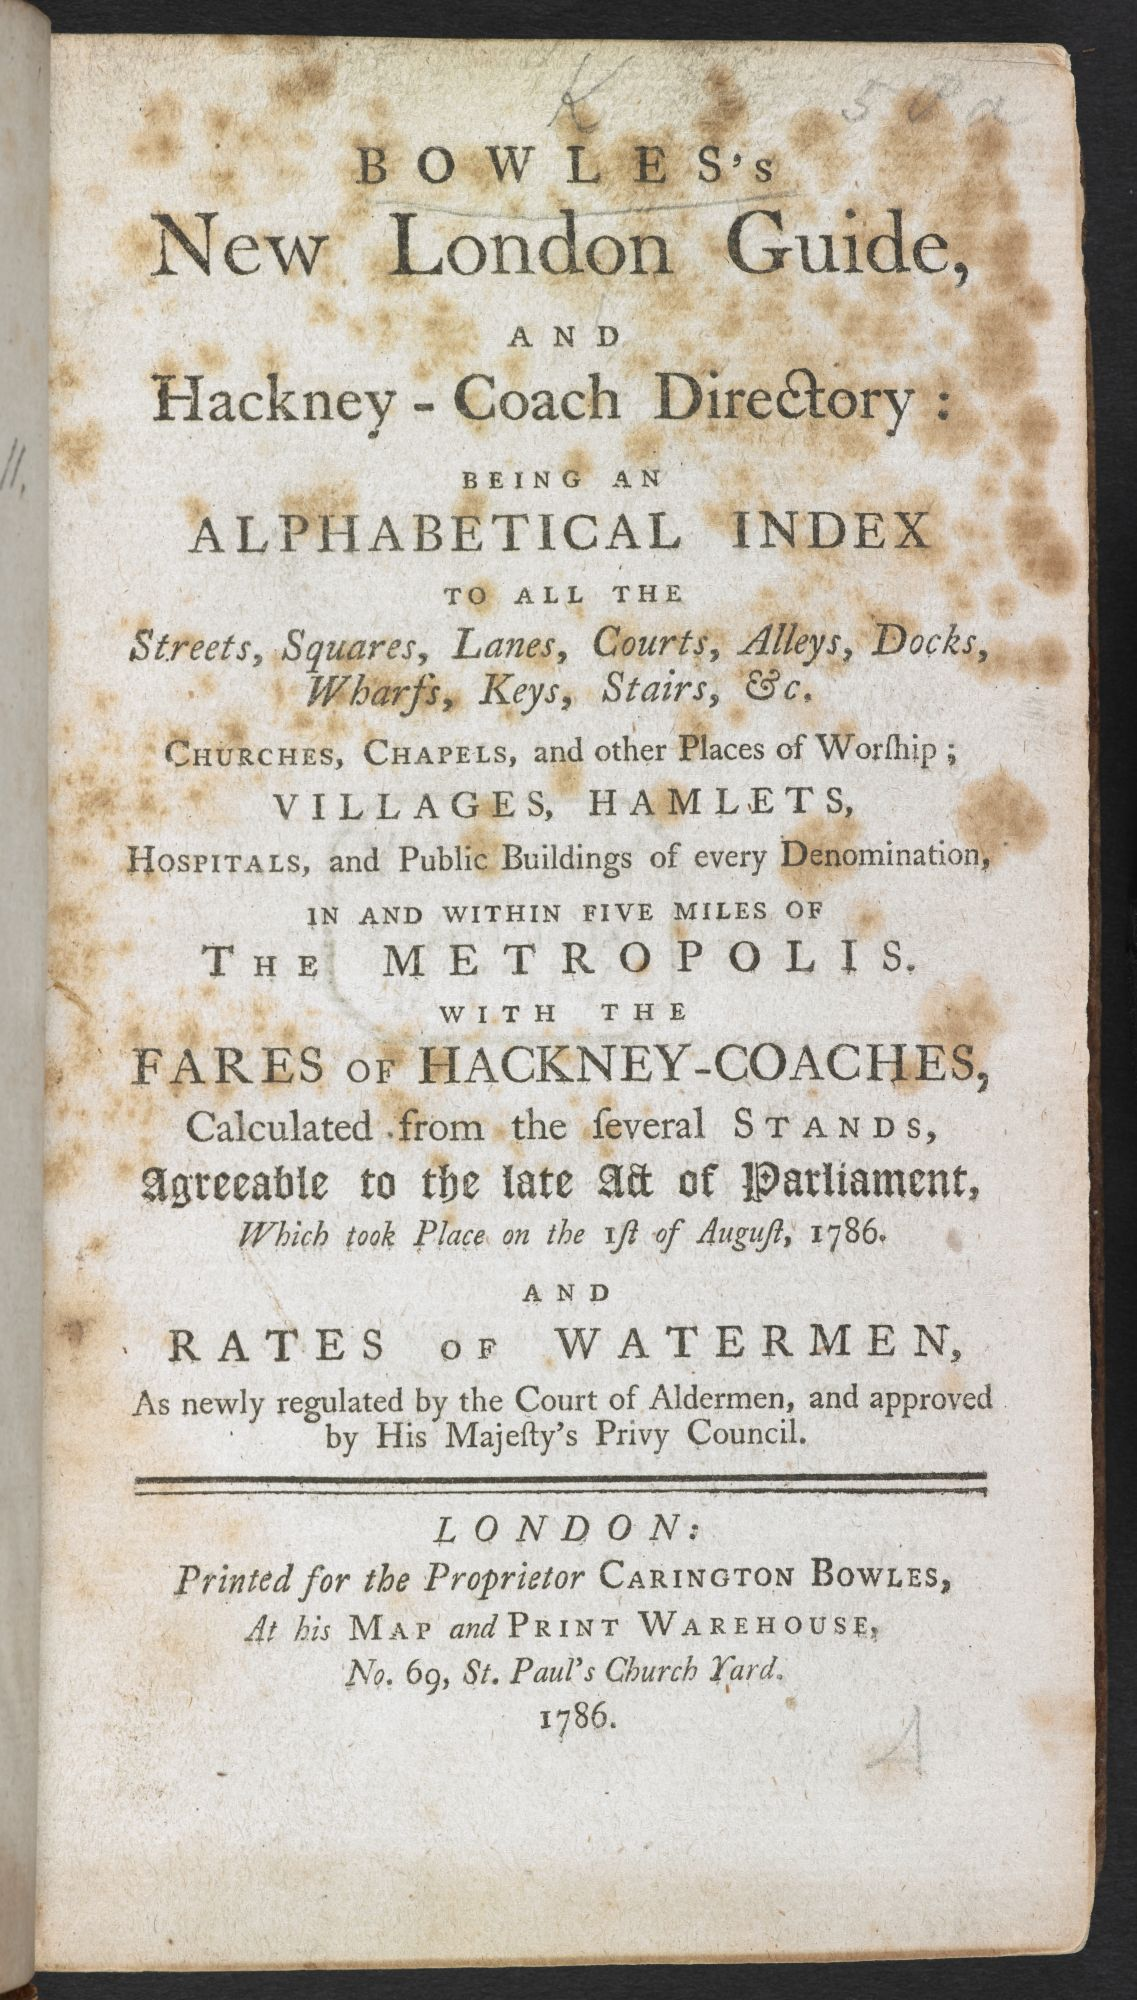 Title page of Bowles' New London Guide.